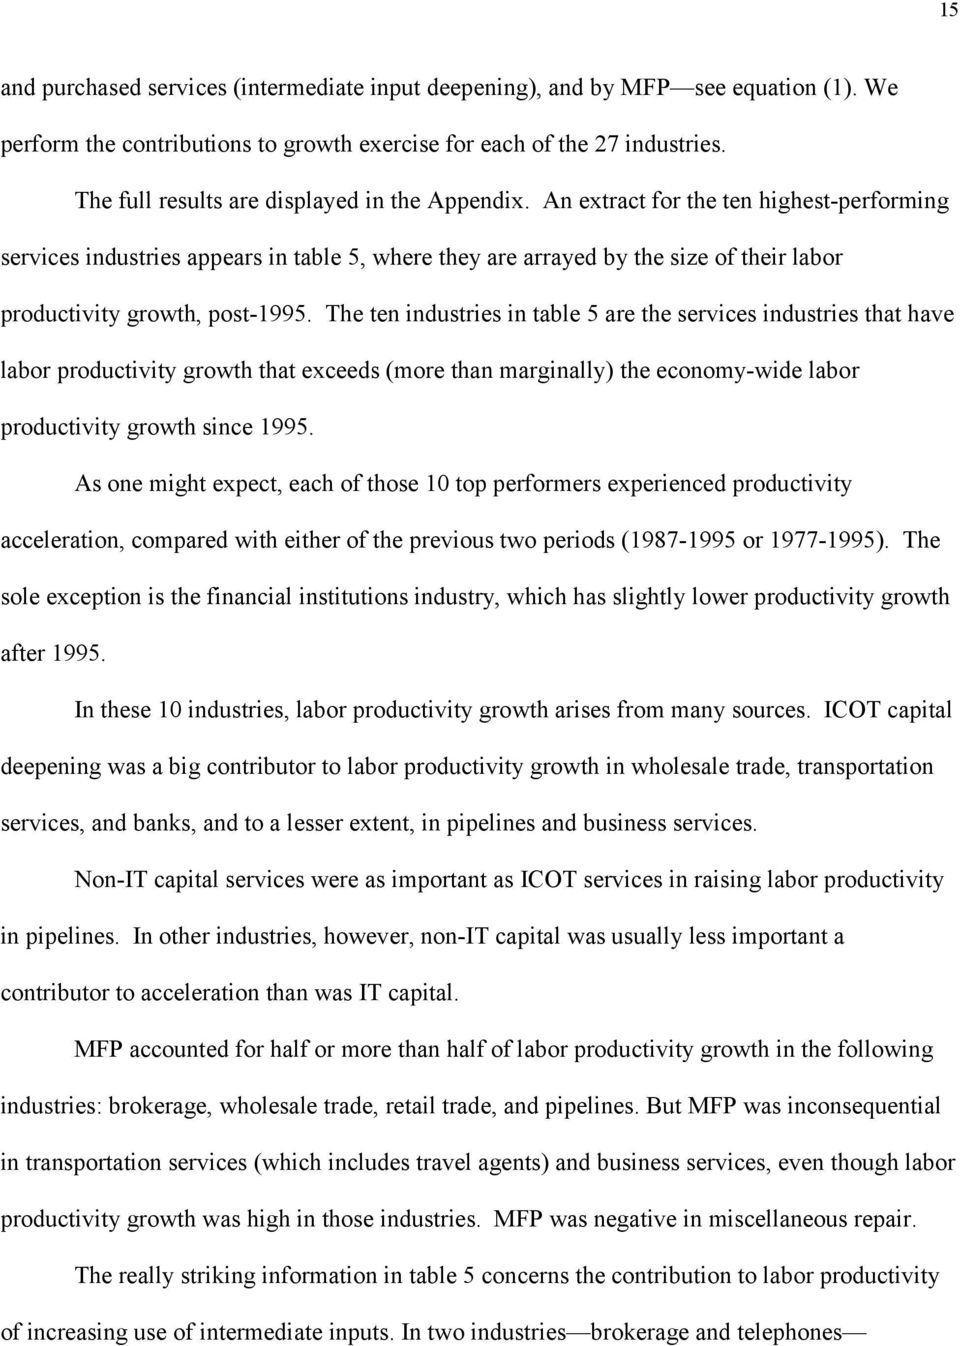 An extract for the ten highest-performing services industries appears in table 5, where they are arrayed by the size of their labor productivity growth, post-1995.